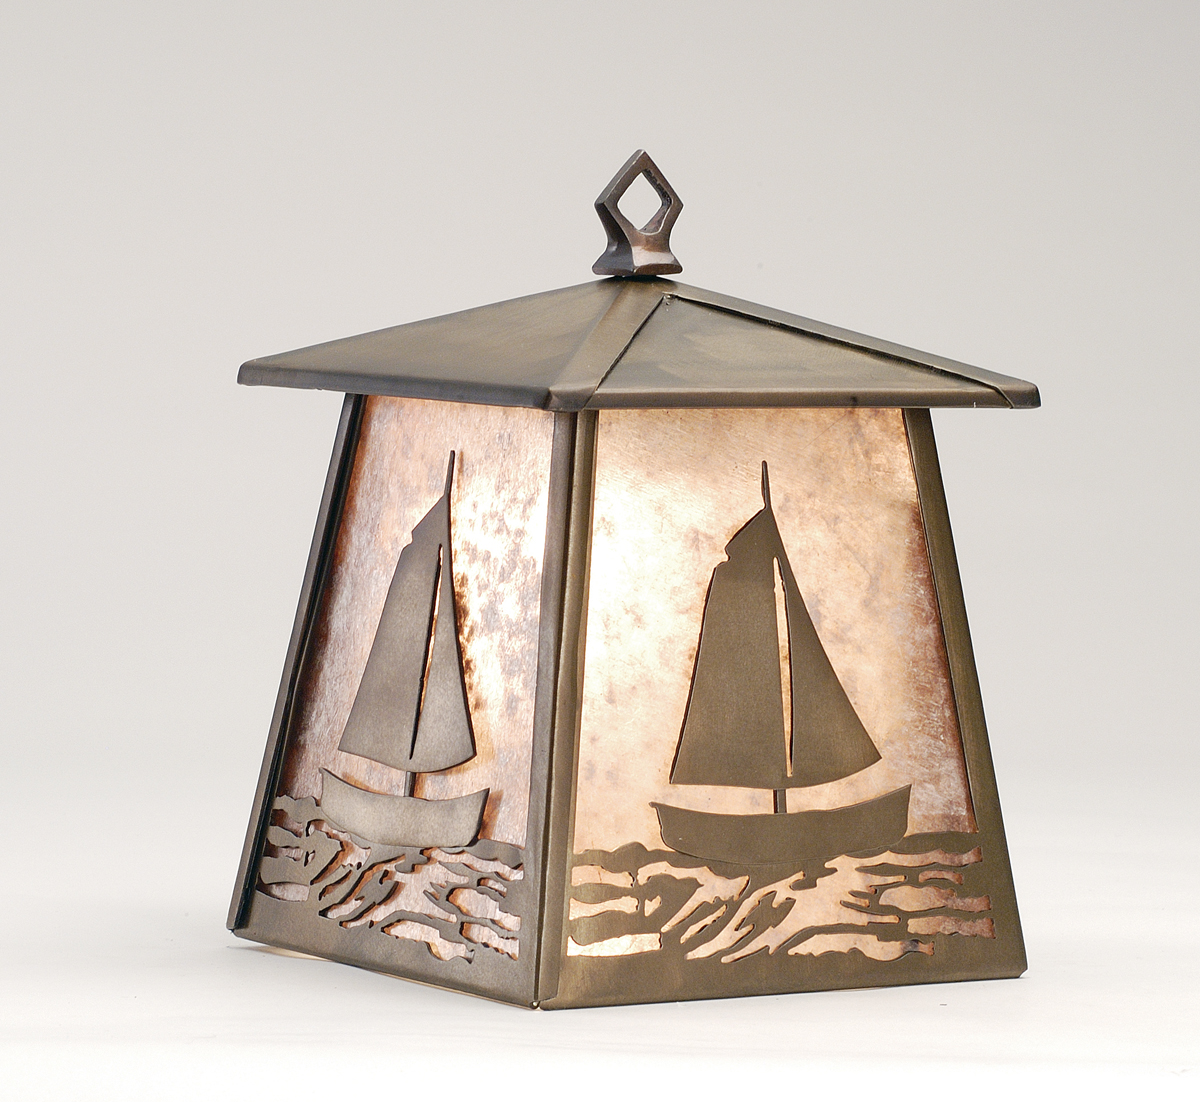 Rustic Cabin Wall Sconces : Meyda Tiffany (82646) 7.5 Inch Width Sailboat Hanging Wall Sconce